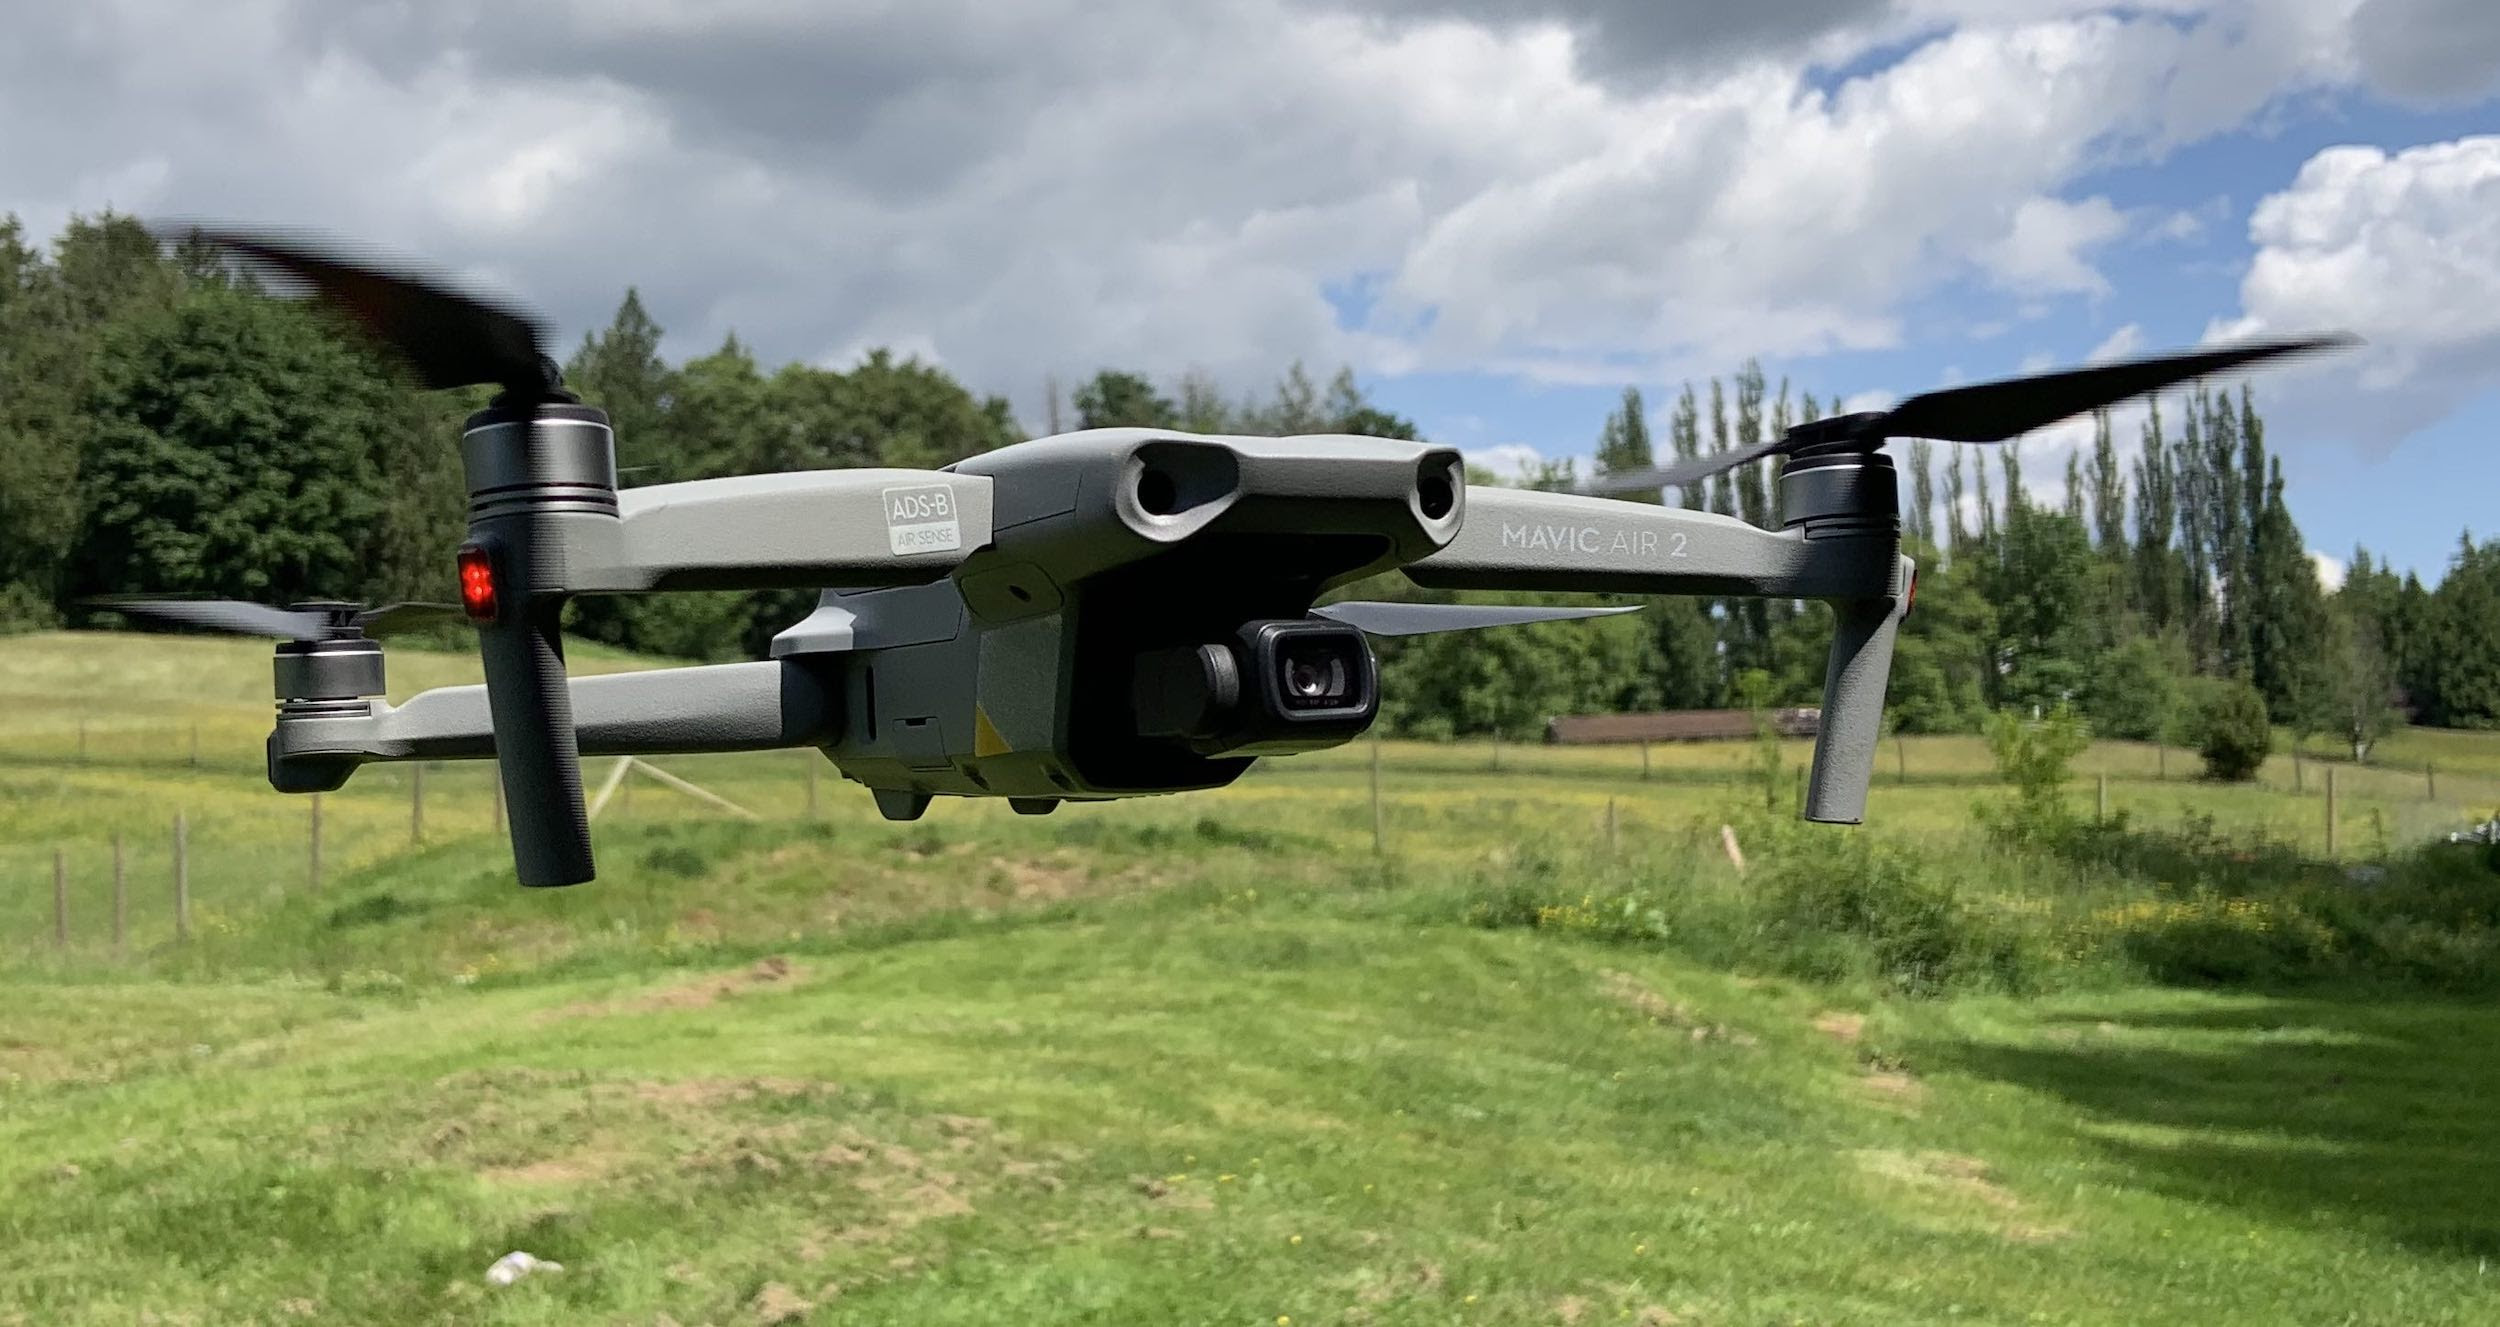 DJI Mavic Air 2 Quadcopter Drone Review | Best Buy Blog